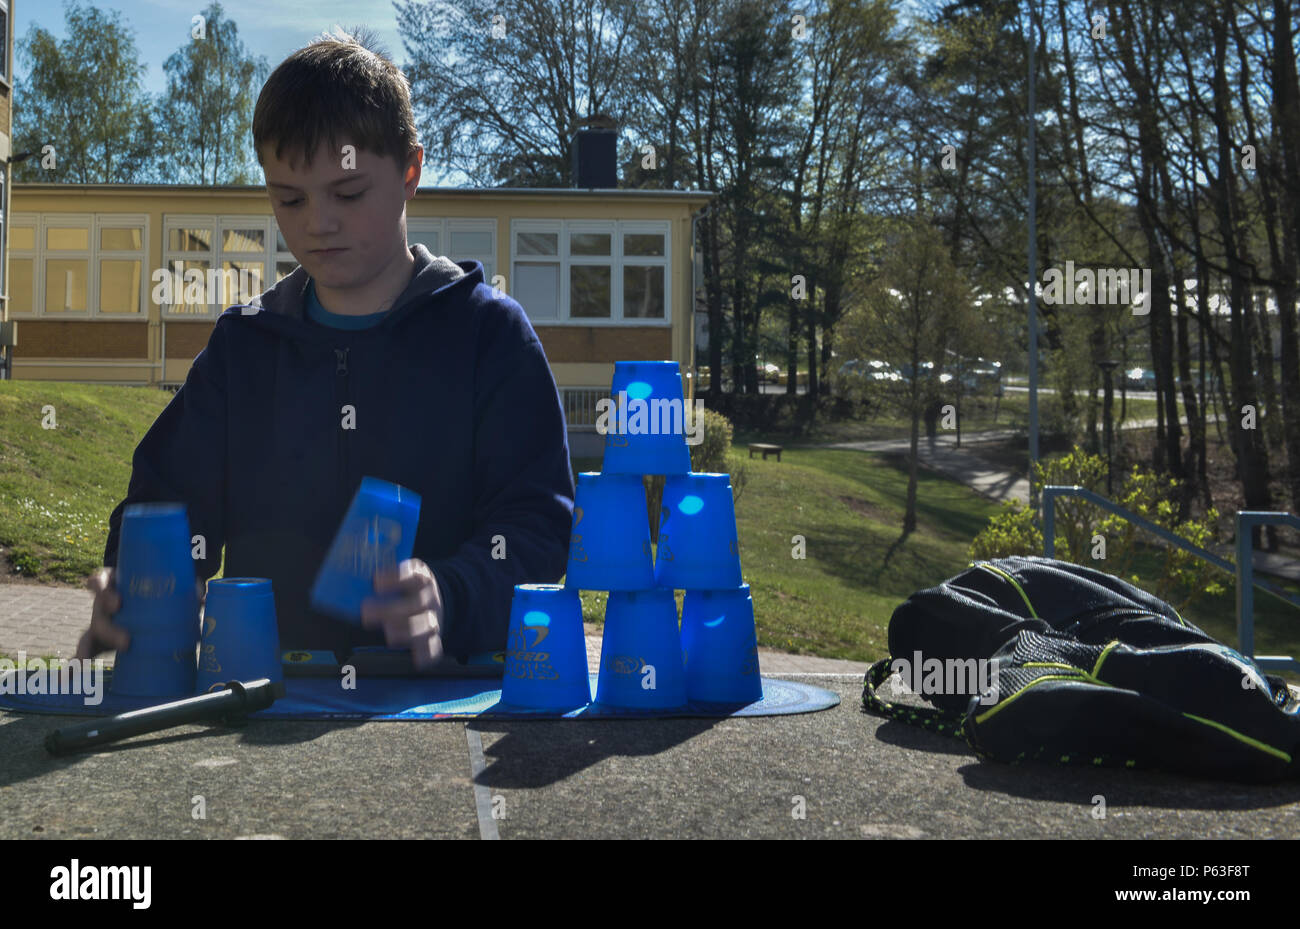 Many children who had to leave Turkey and separate from their family serving there have been placed in new schools around the Kaiserslautern Military Community in Germany. While attending these new schools they undergo therapy to cope with their stresses and anxieties built up during the transition. - Stock Image